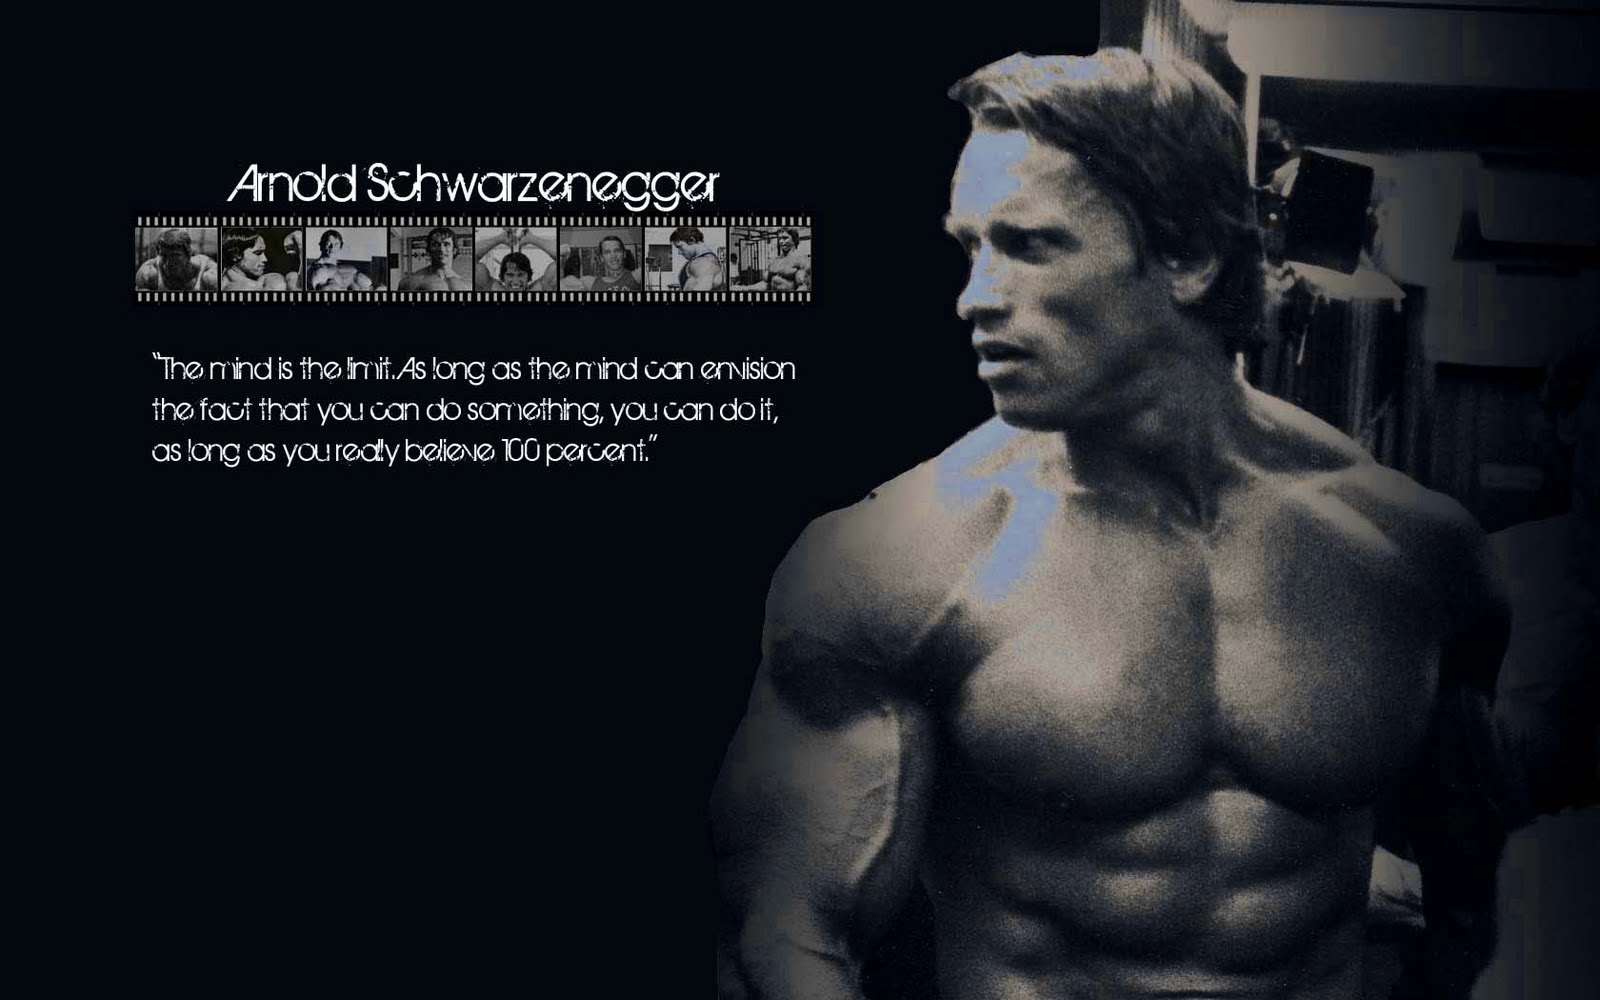 arnold motivational wallpapers - wallpapersafari